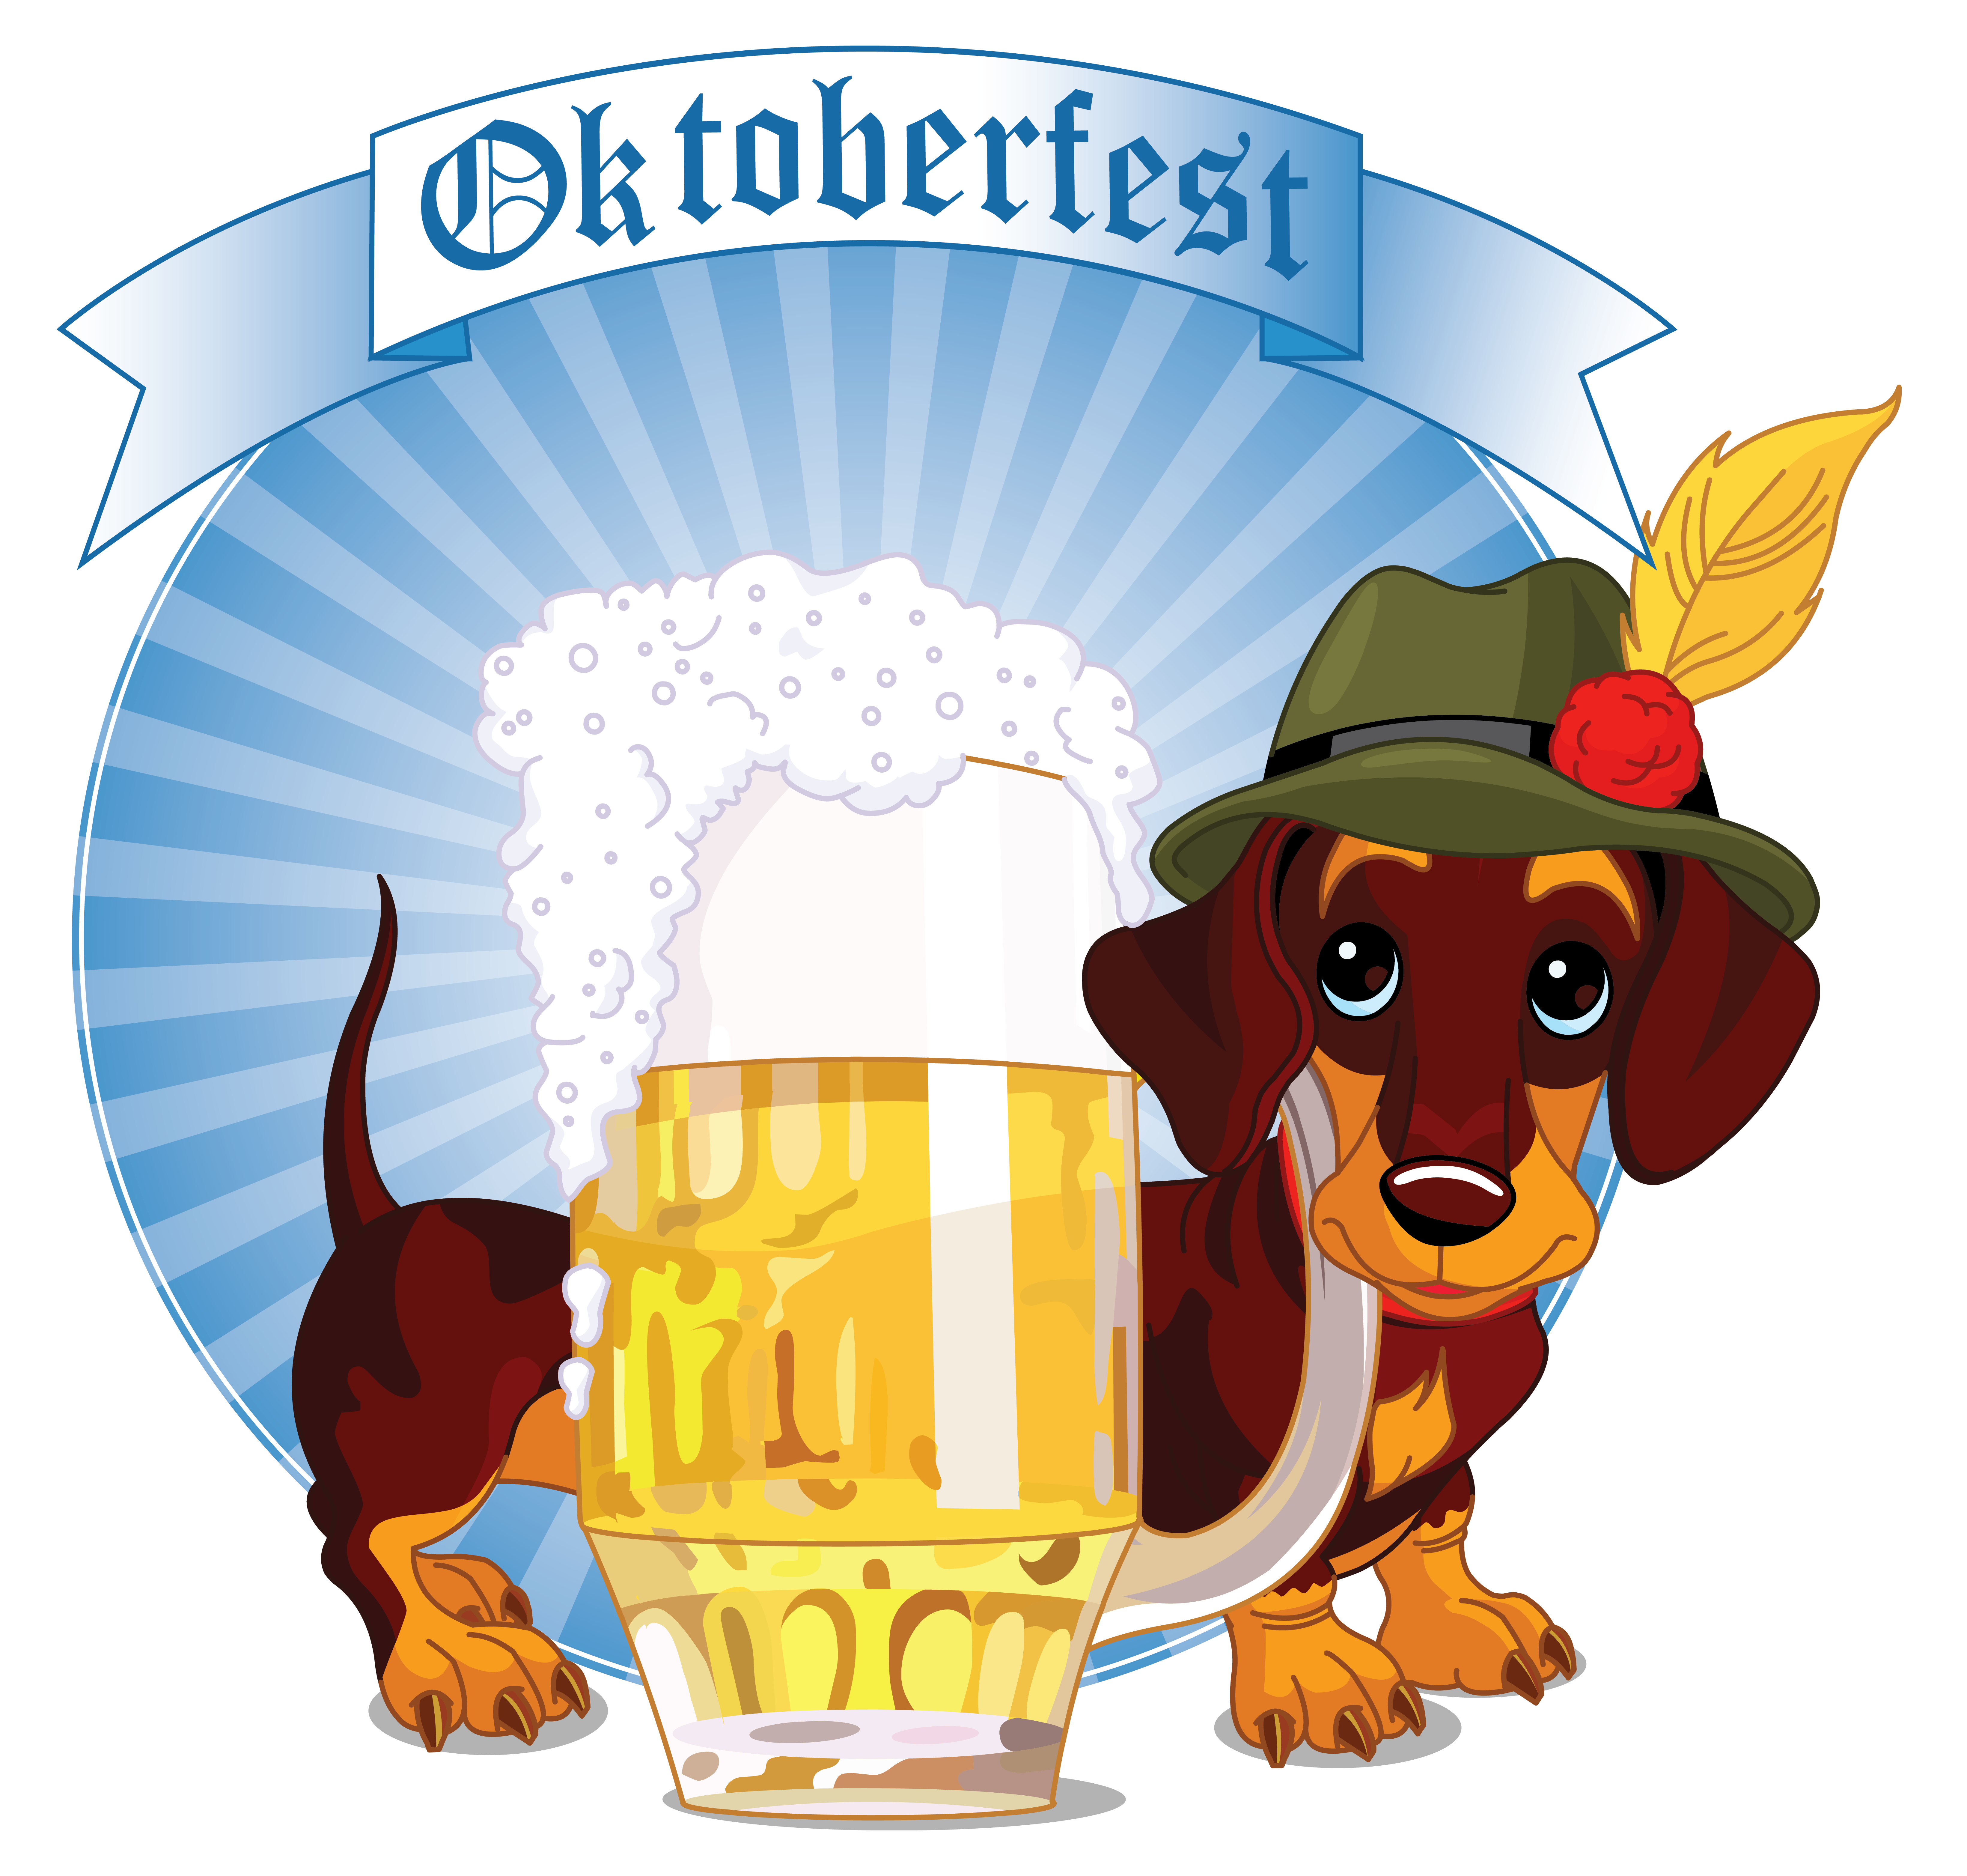 Oktoberfest decor with beer. Rose clipart dog